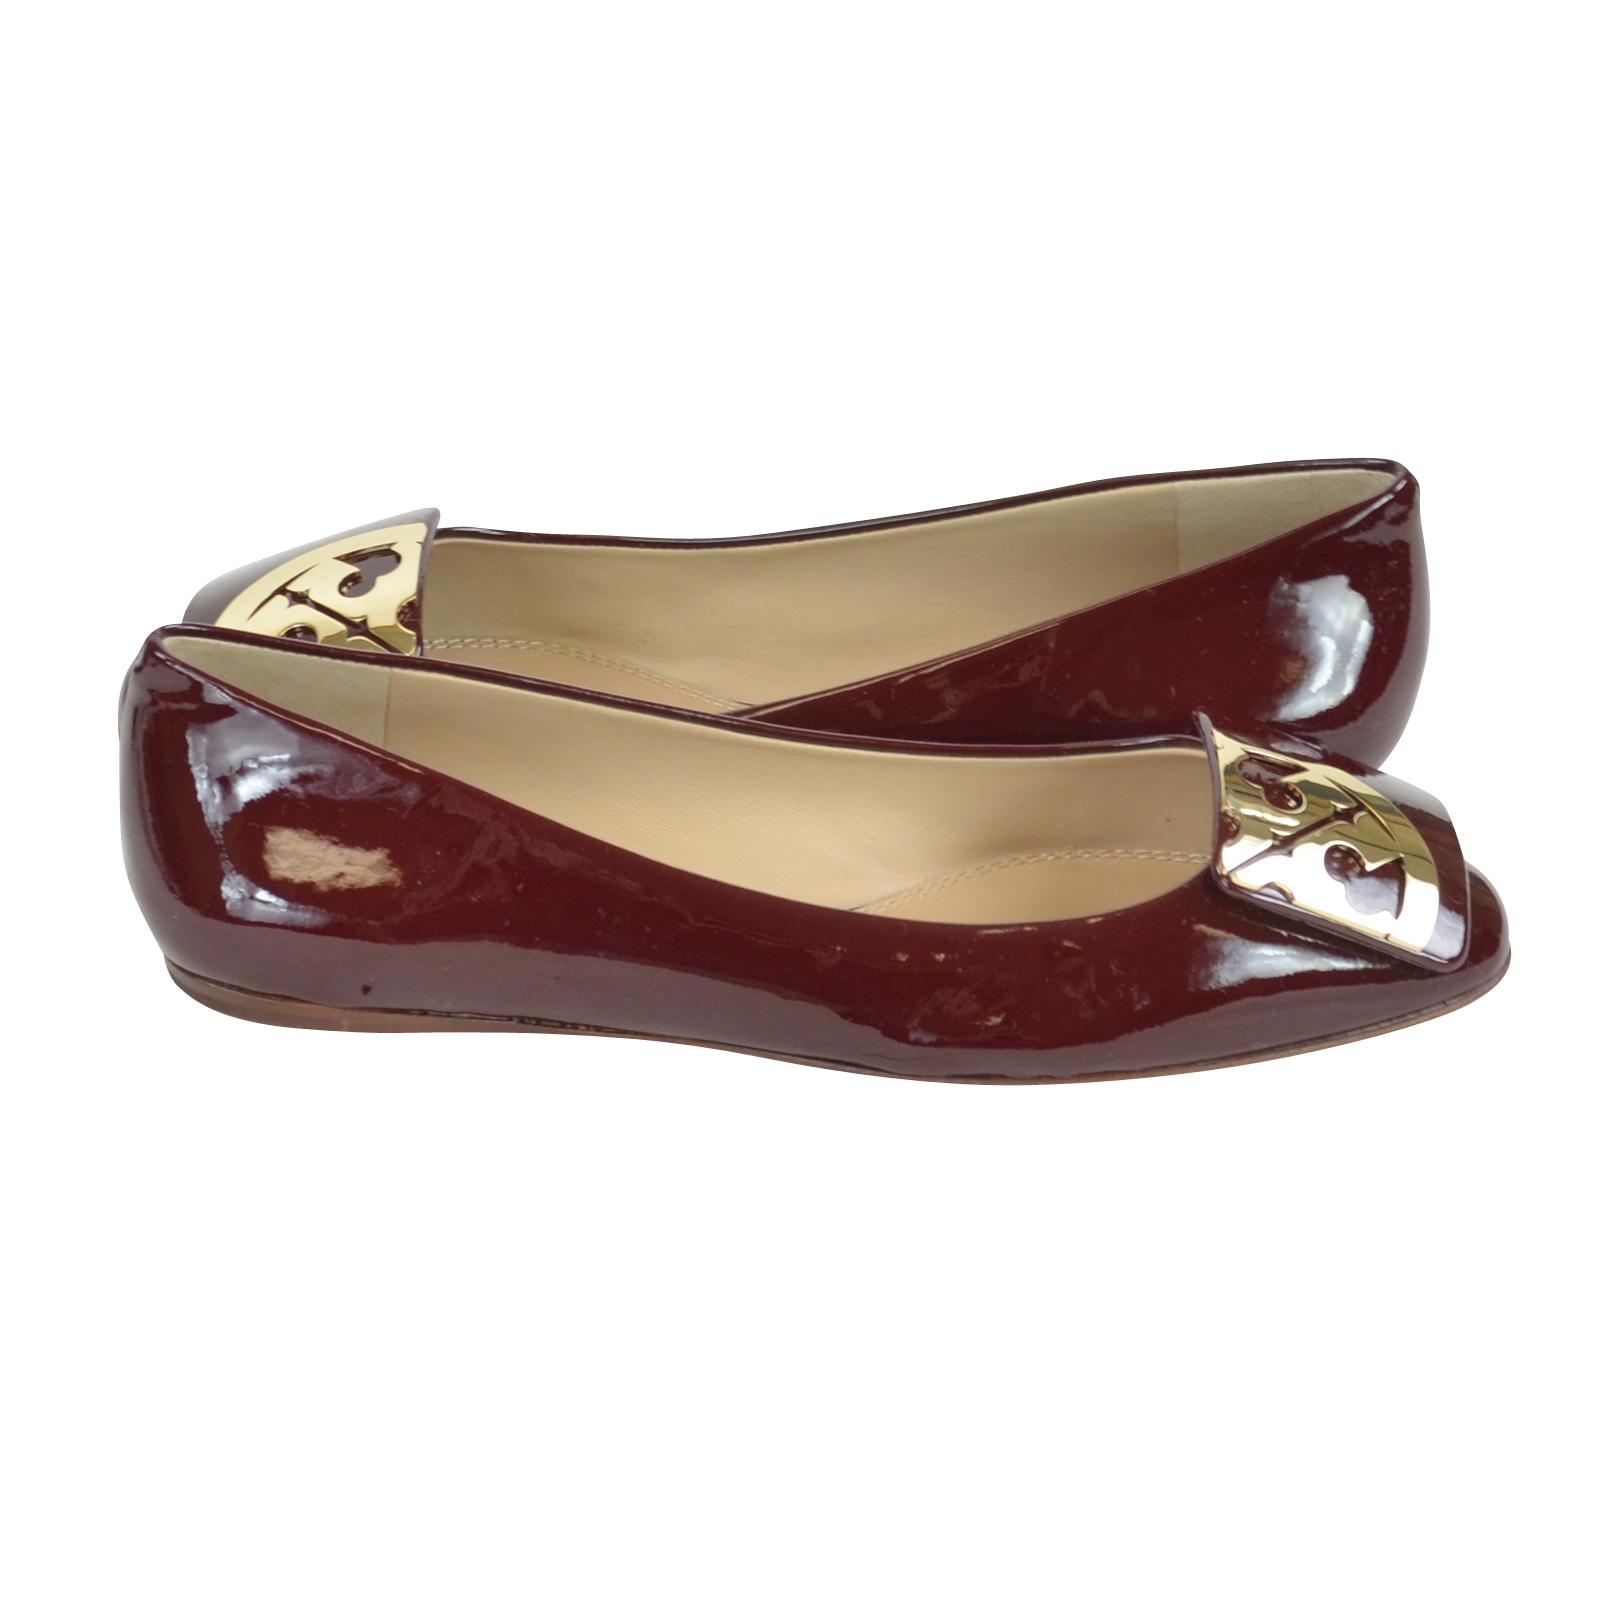 e07a26e27 ... Tory Burch Oxblood Square Toe Logo Logo Logo Patent Leather In Flats  Size US 8.5 Regular ...